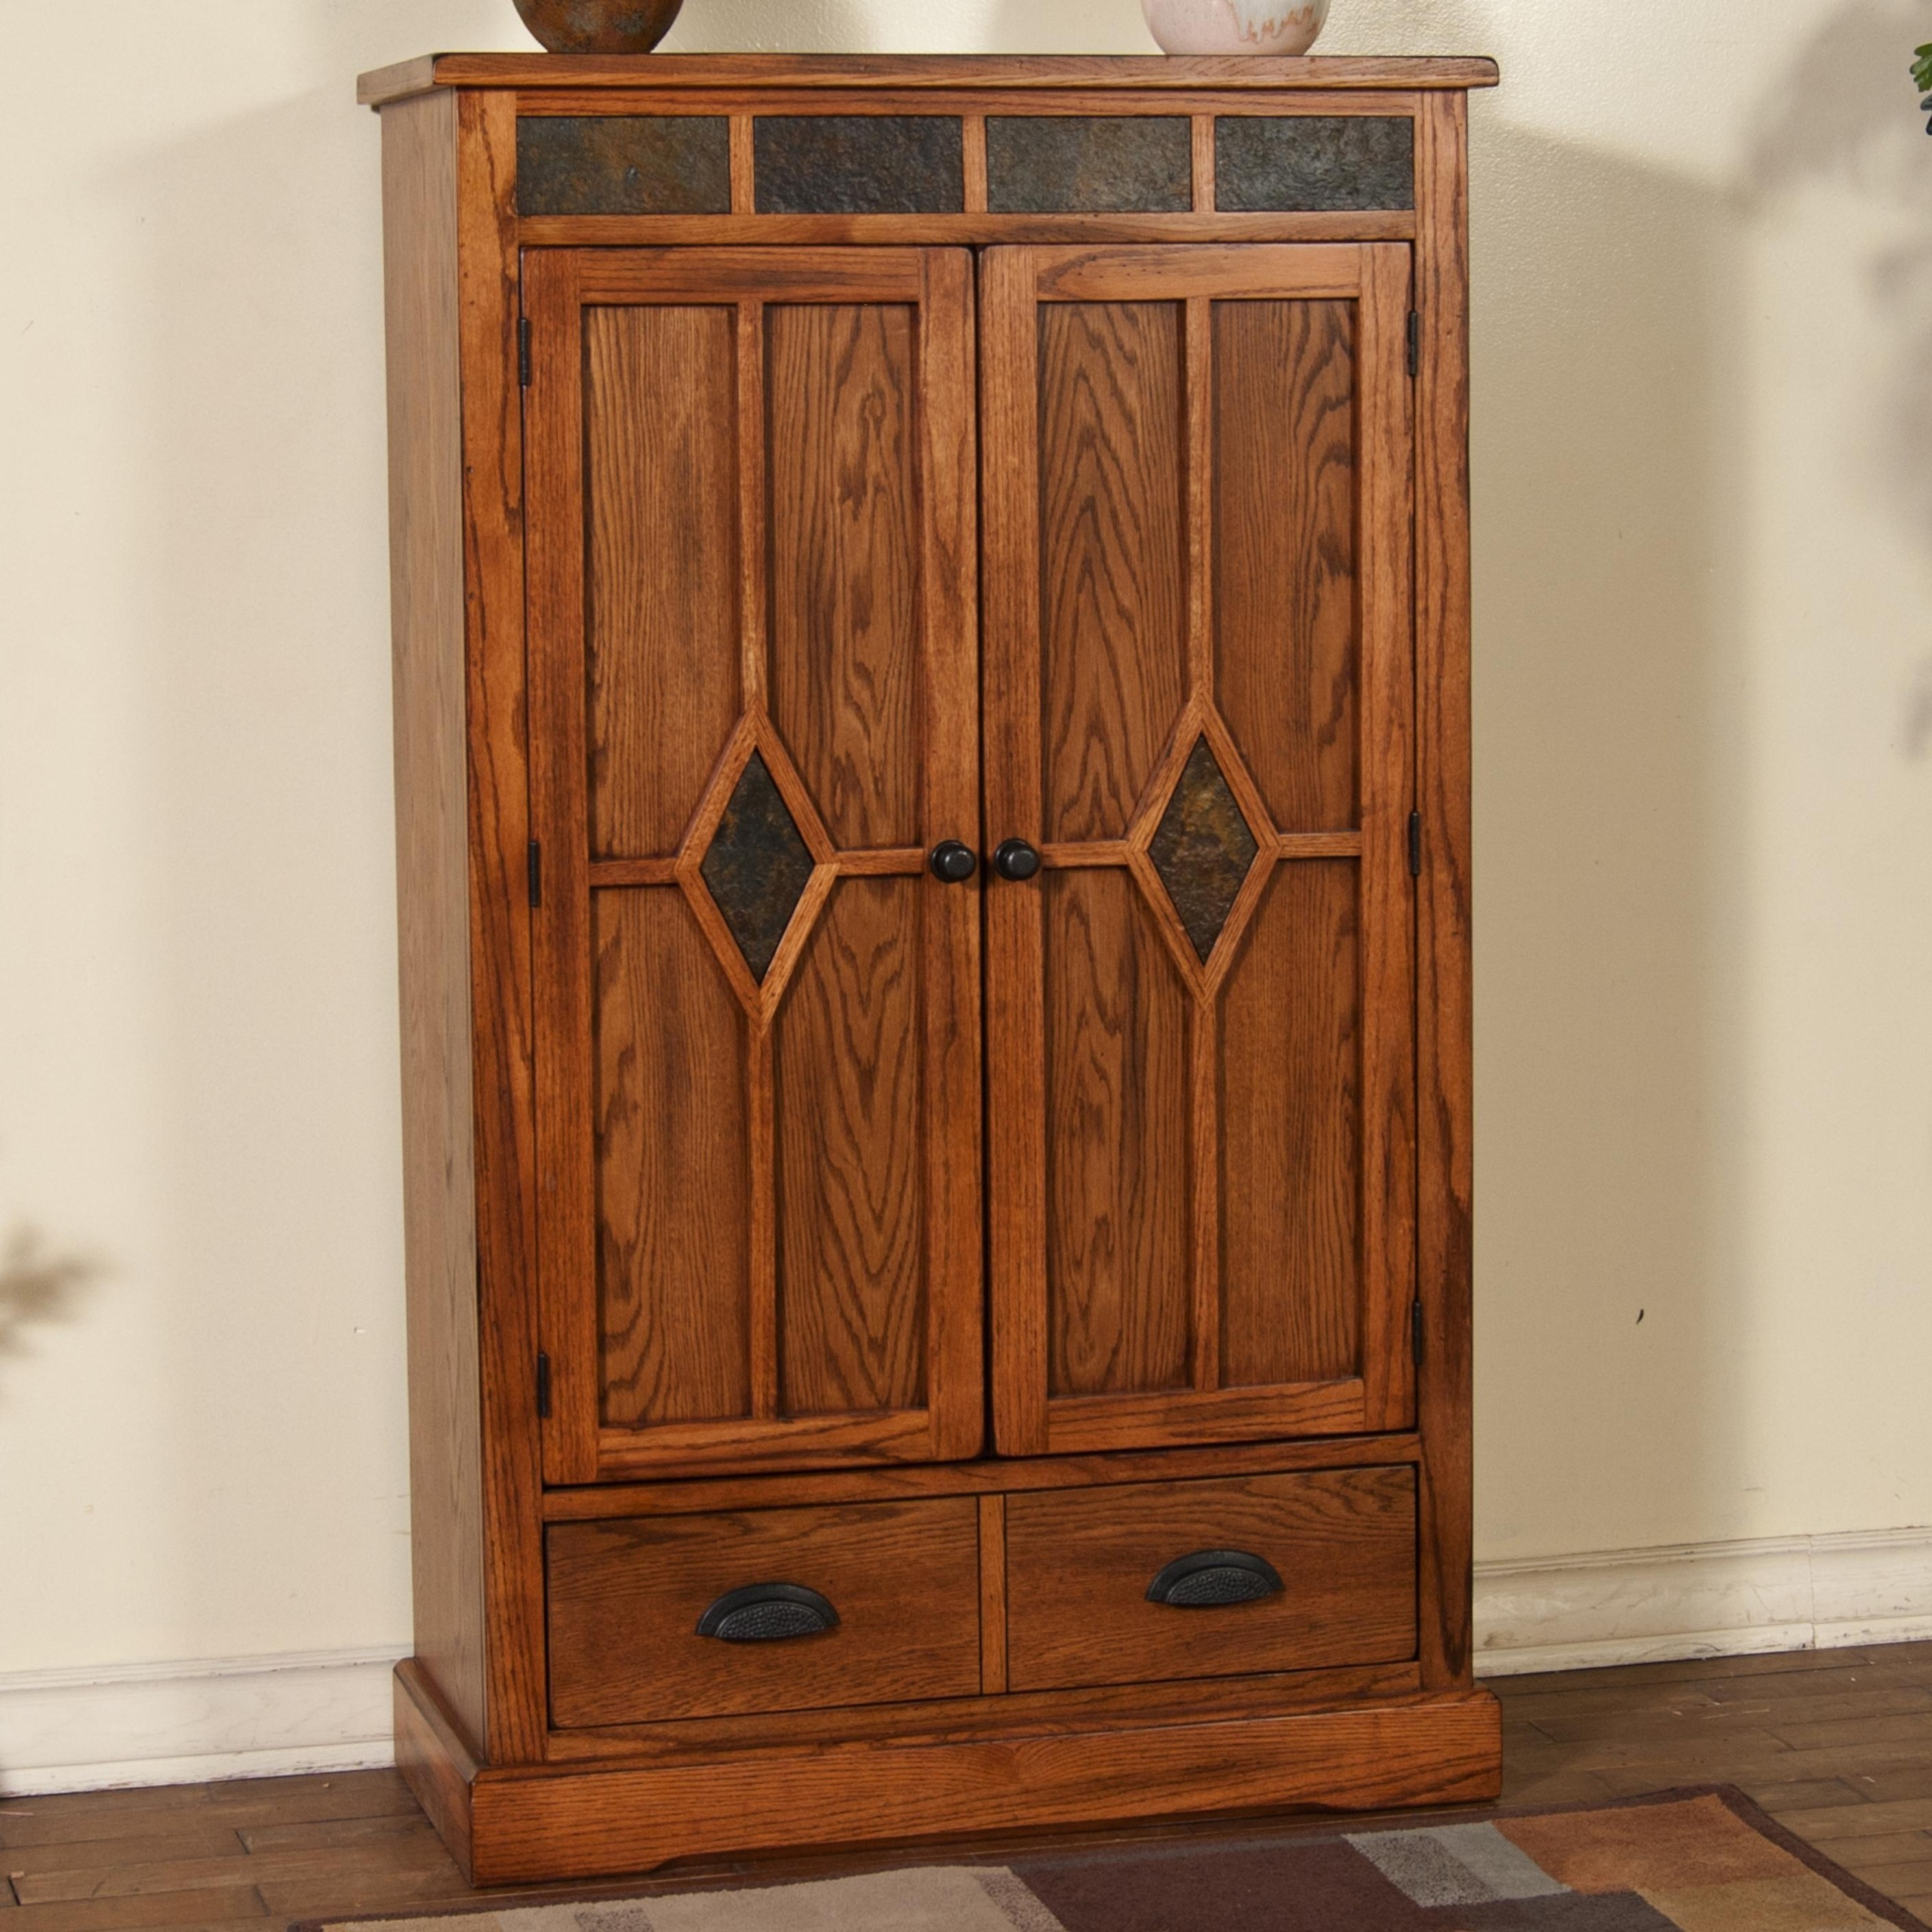 Sedona Rustic Oak Furniture Ideas On Foter